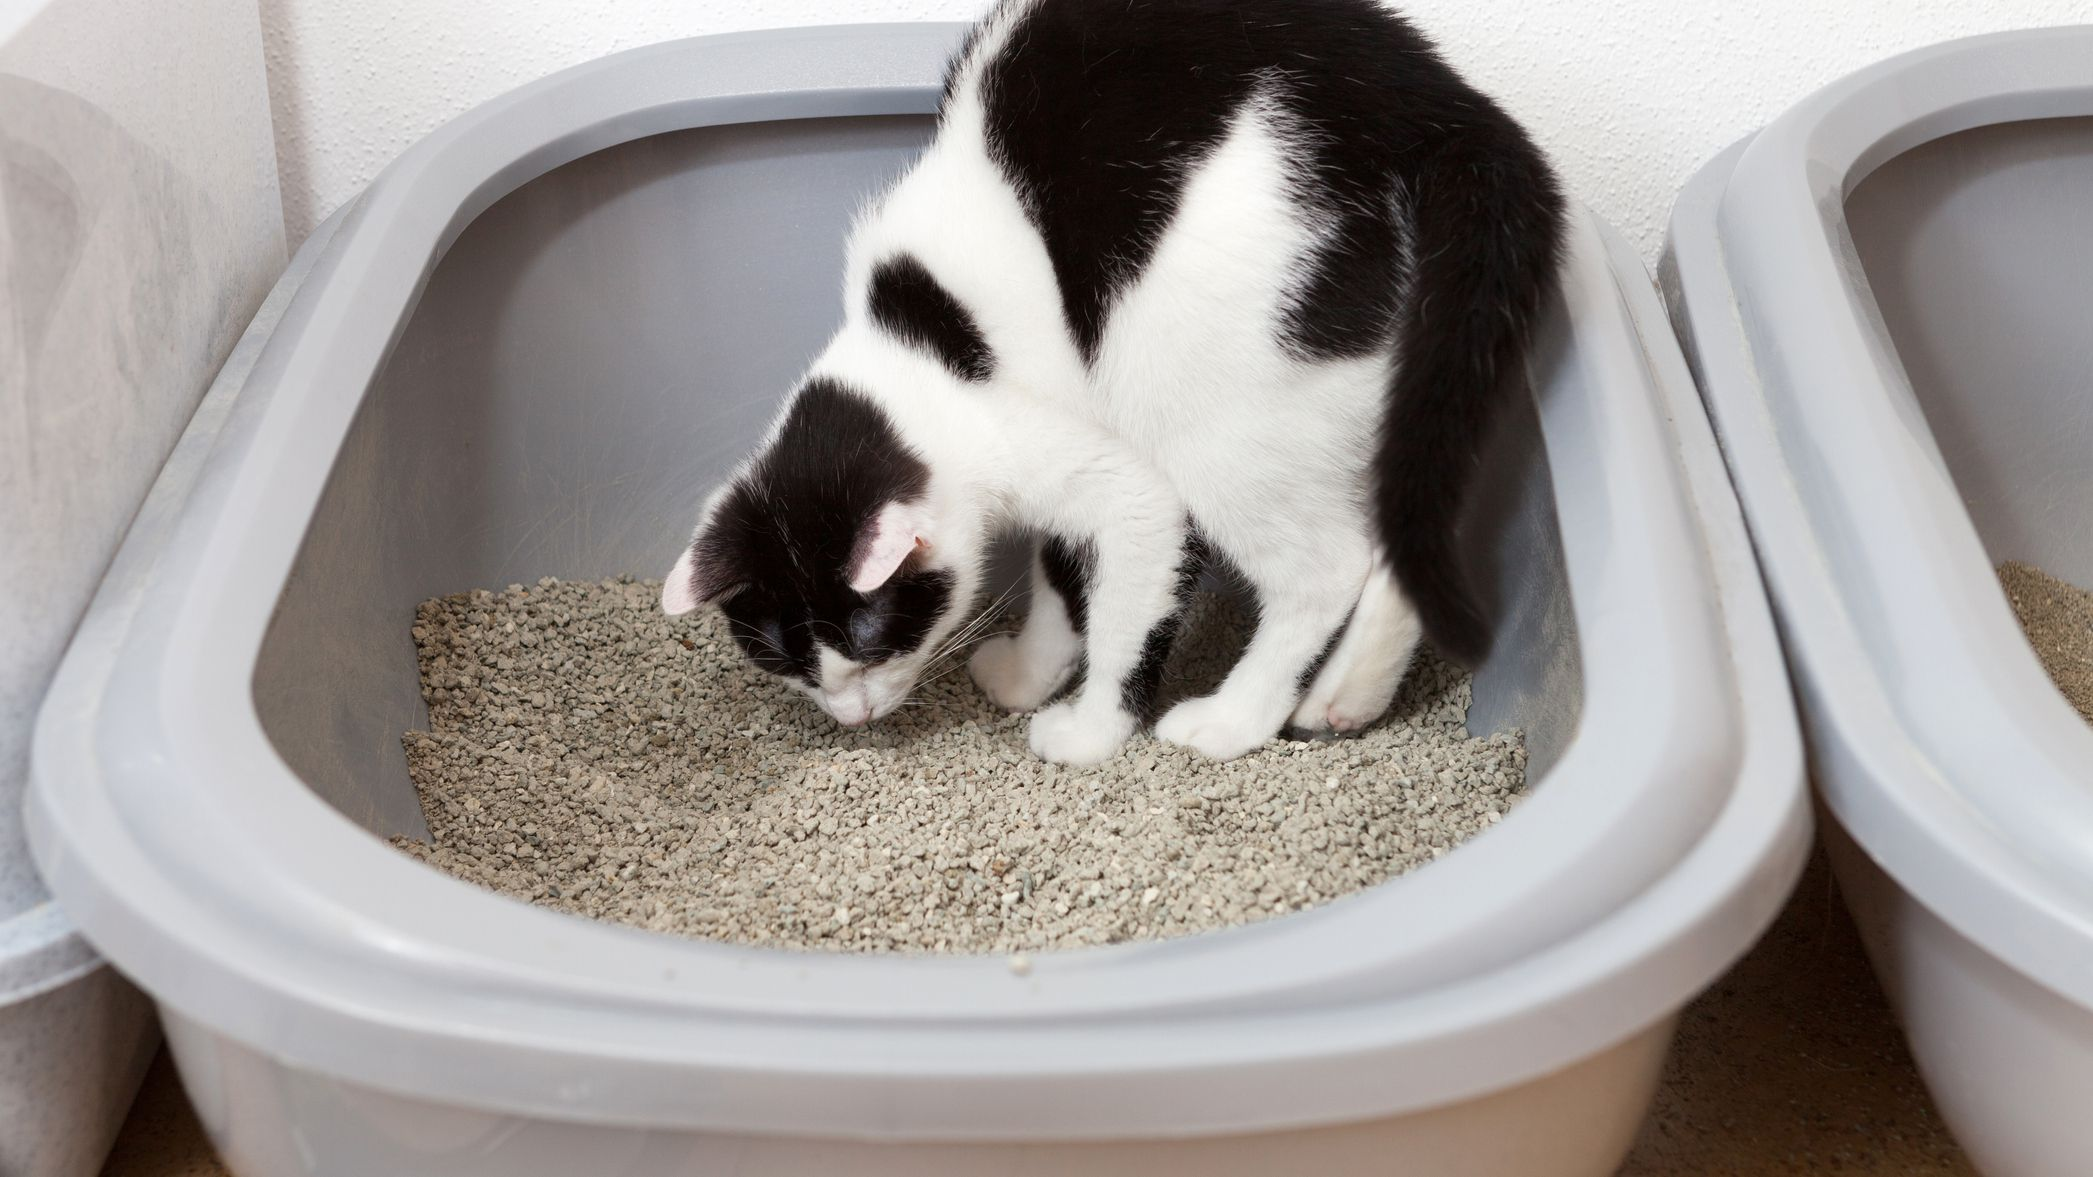 Why do cats want to eat cat litter?